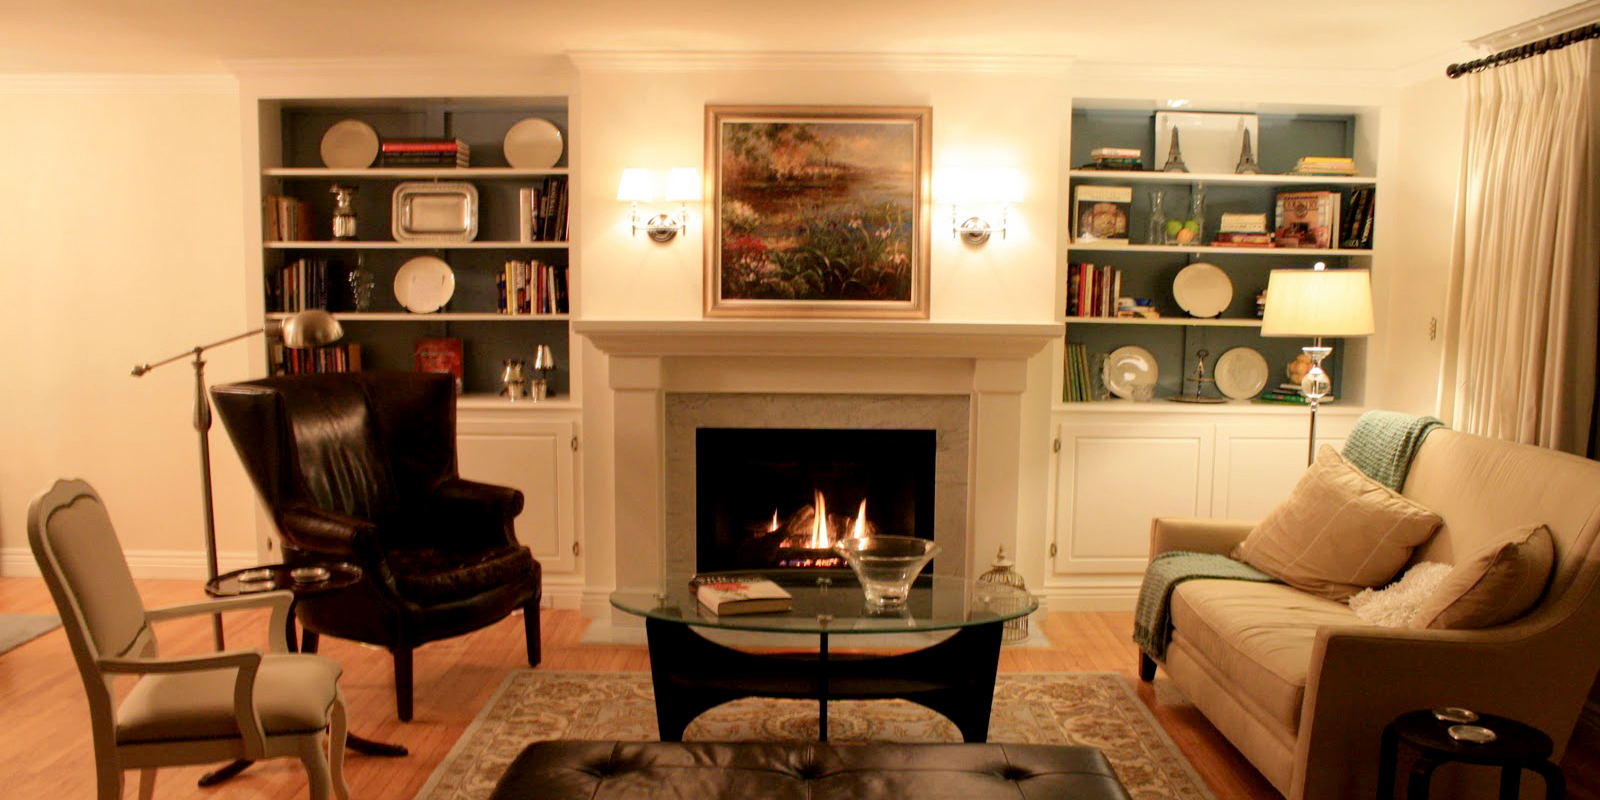 Charmant Remodelaholic | Living Room Remodel, Adding A Fireplace And Built In  Bookshelves